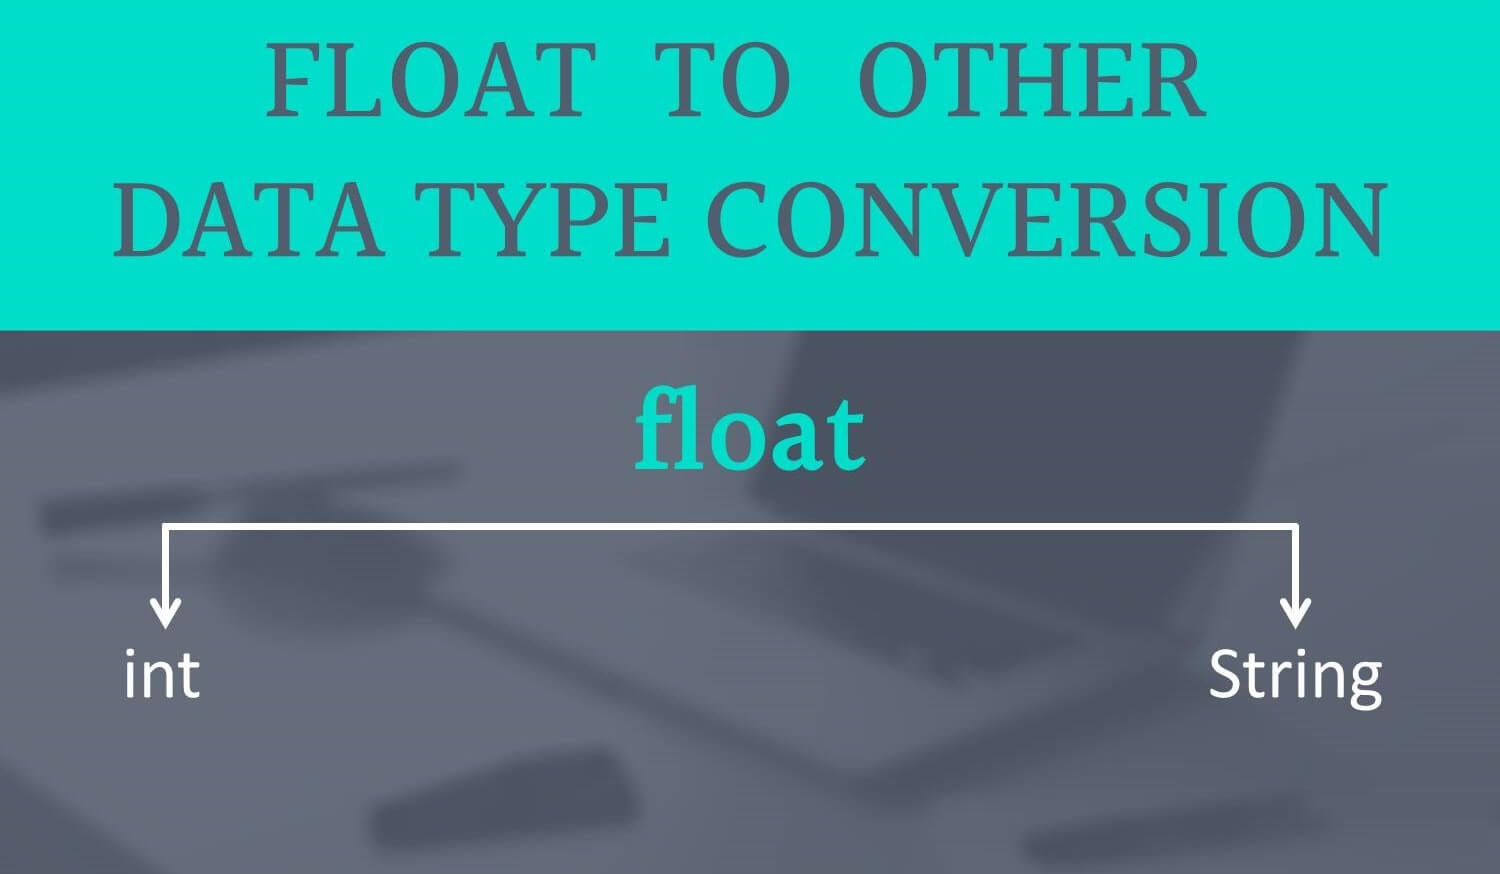 convert float to